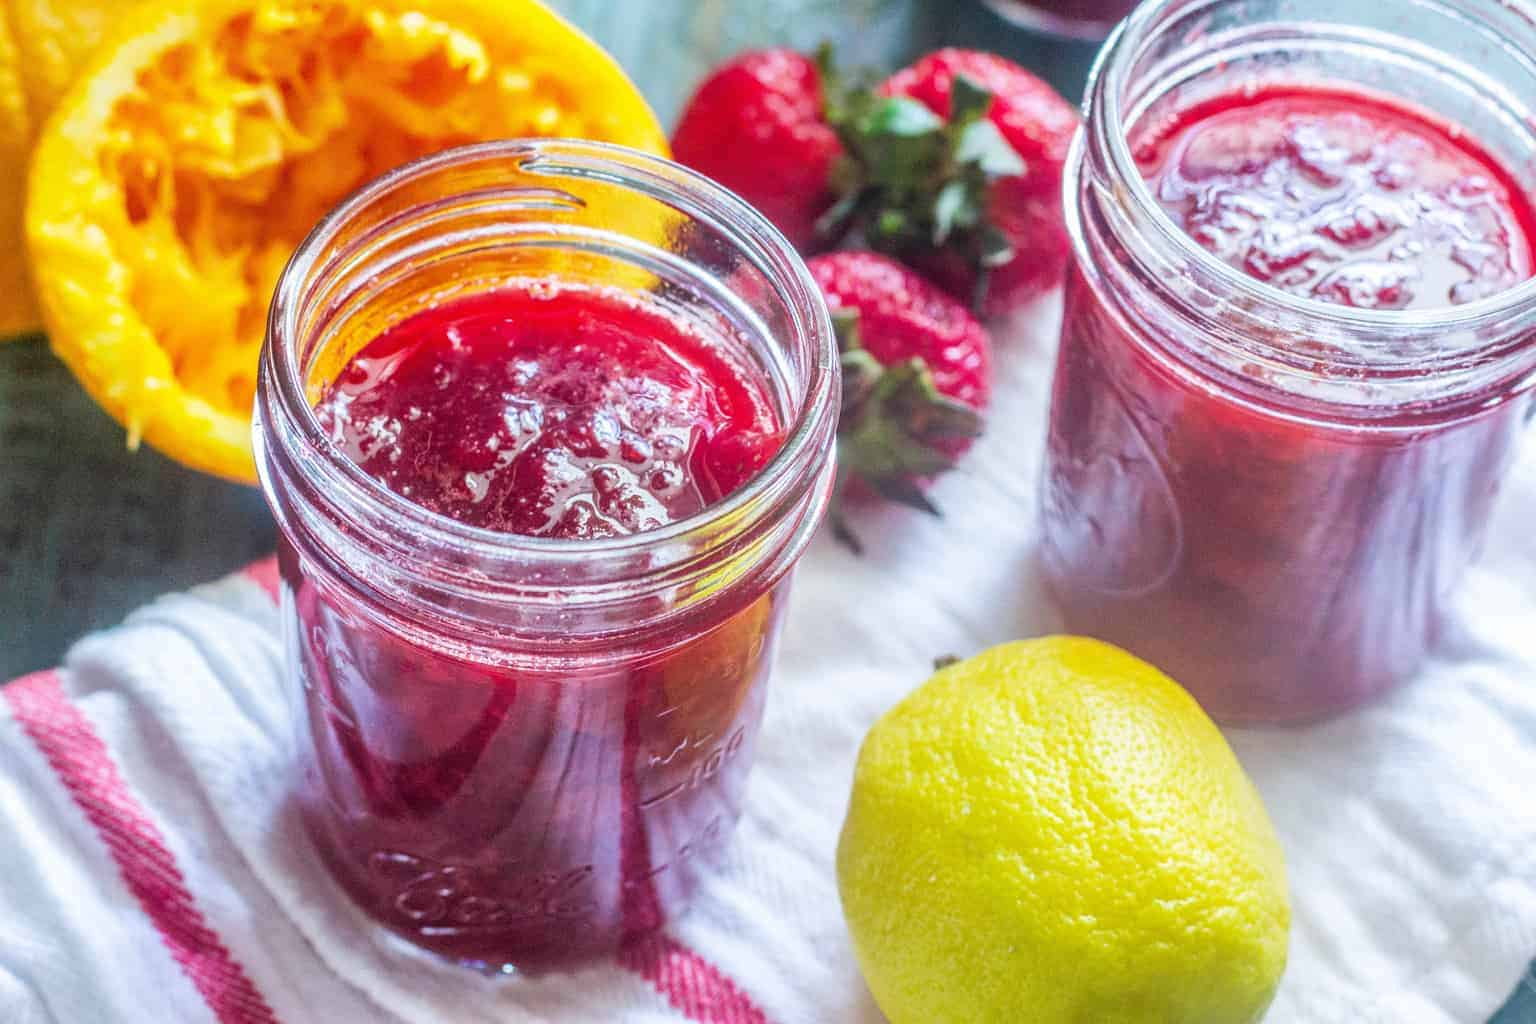 Strawberry Sangria Refrigerator Jam